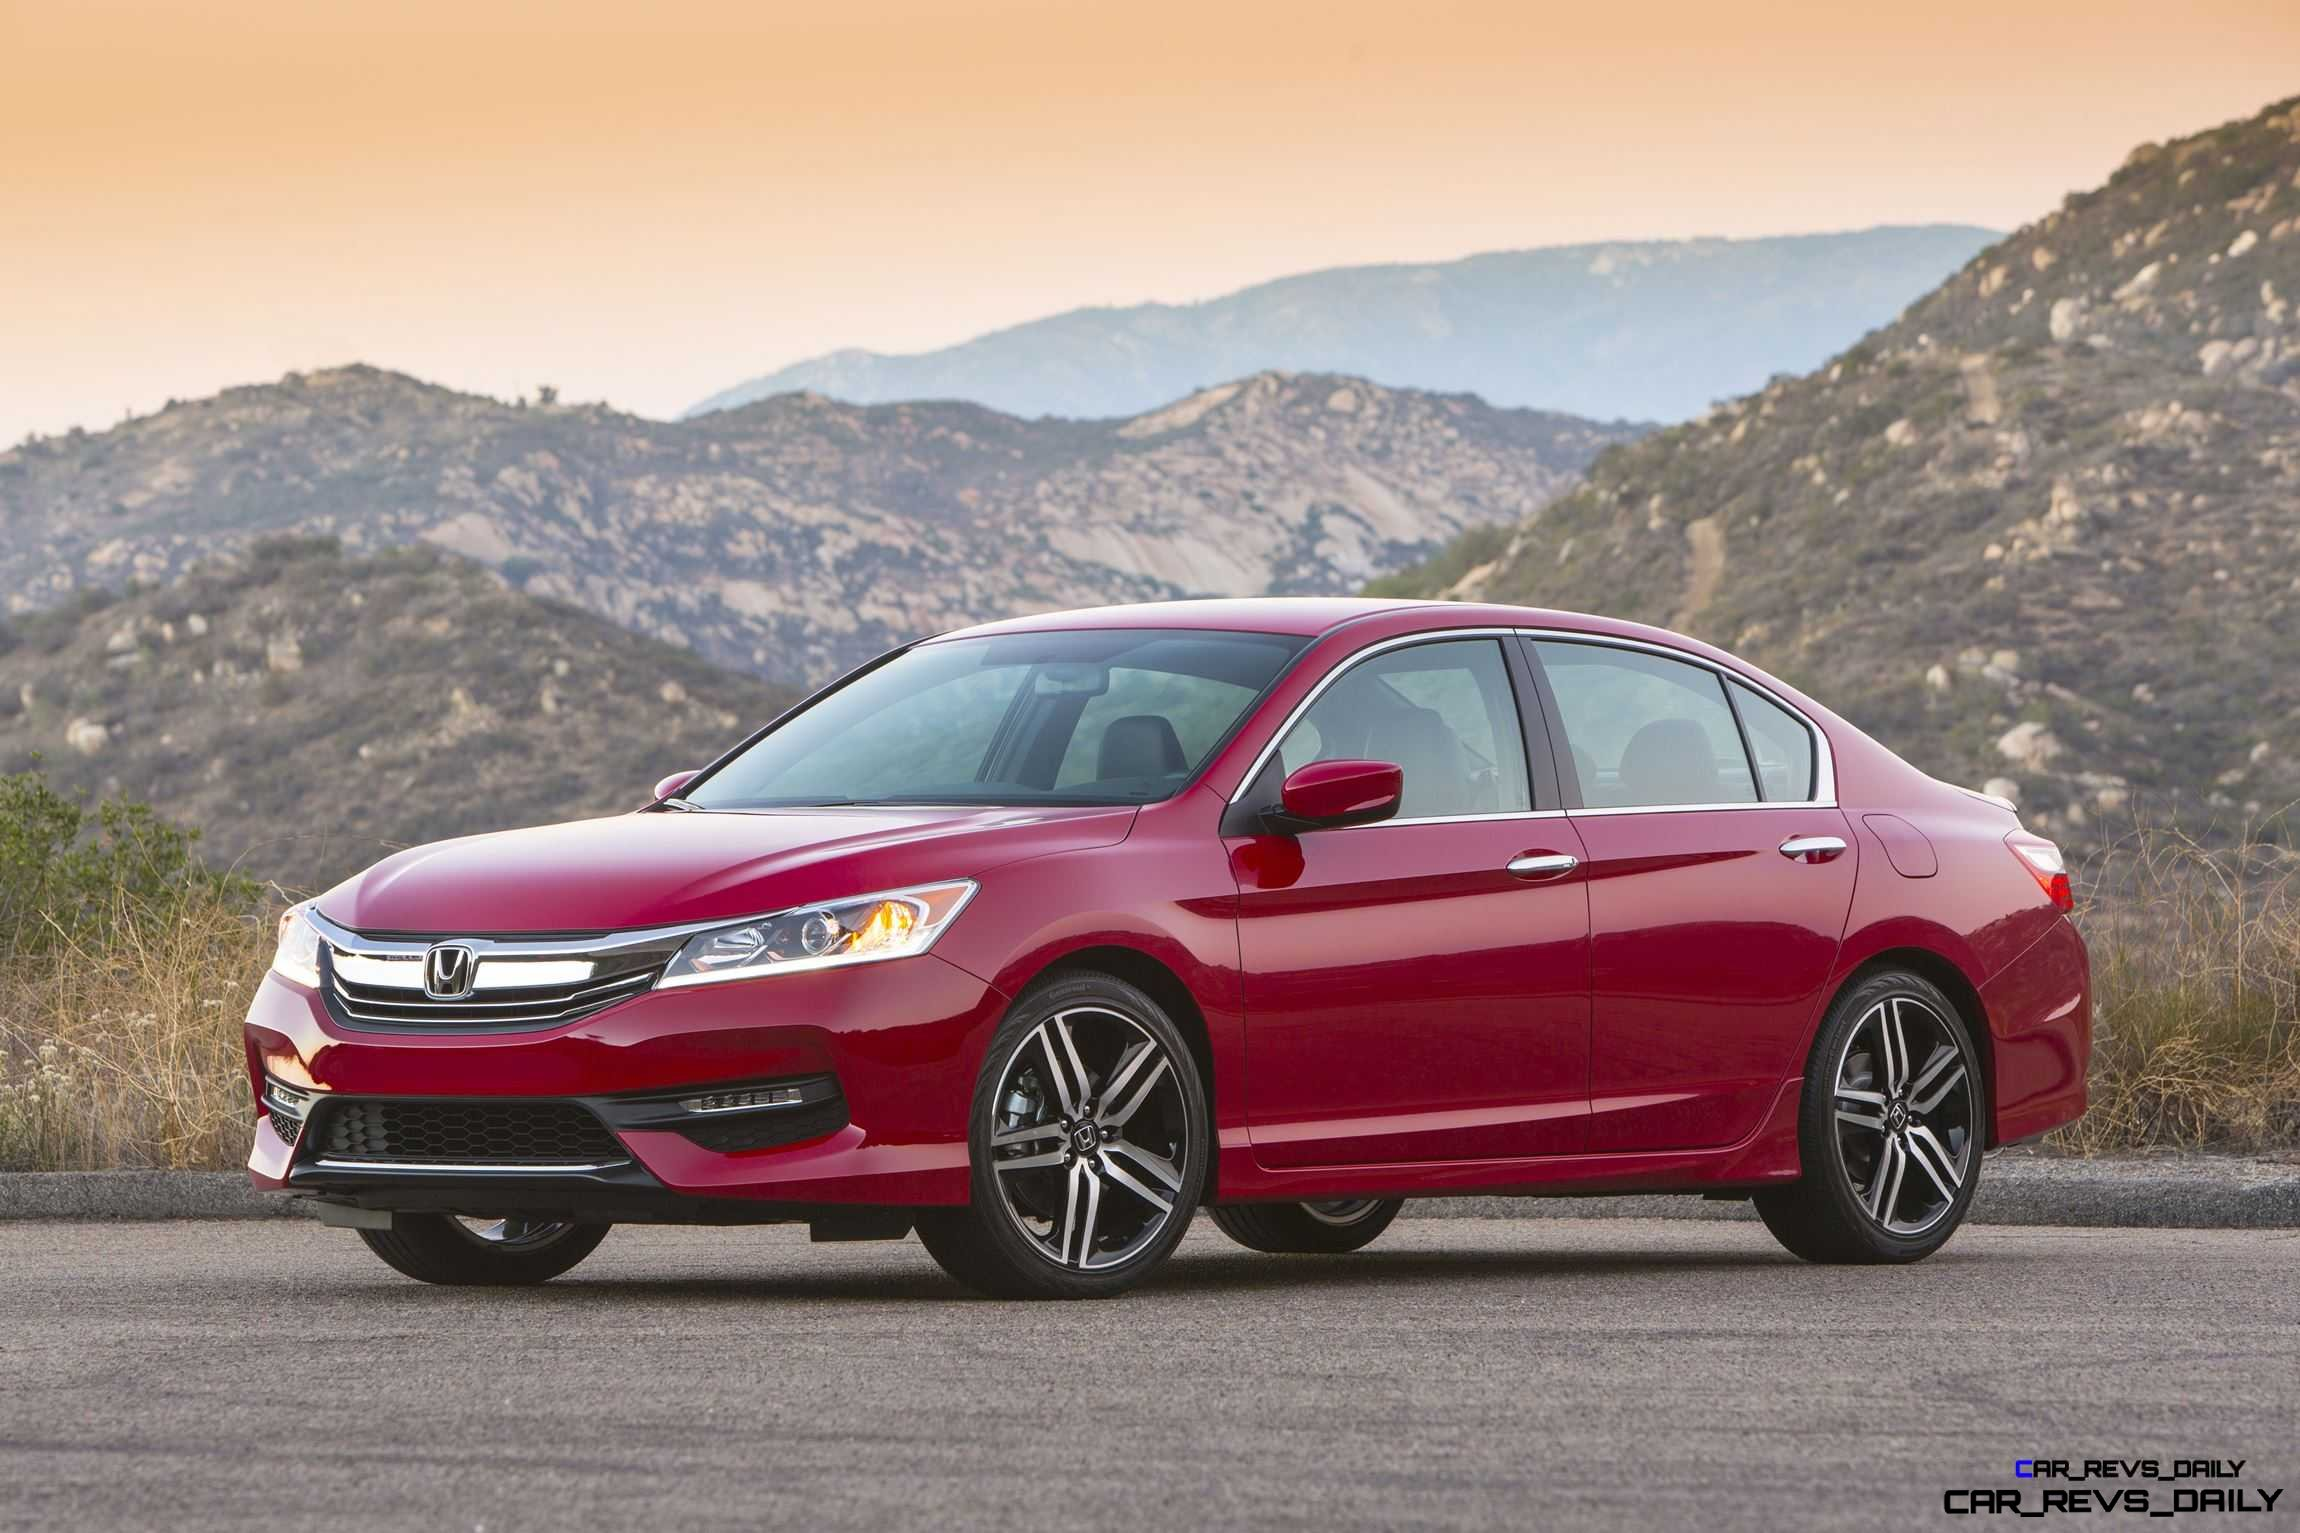 accord honda with wheels old my touring sport from new pin